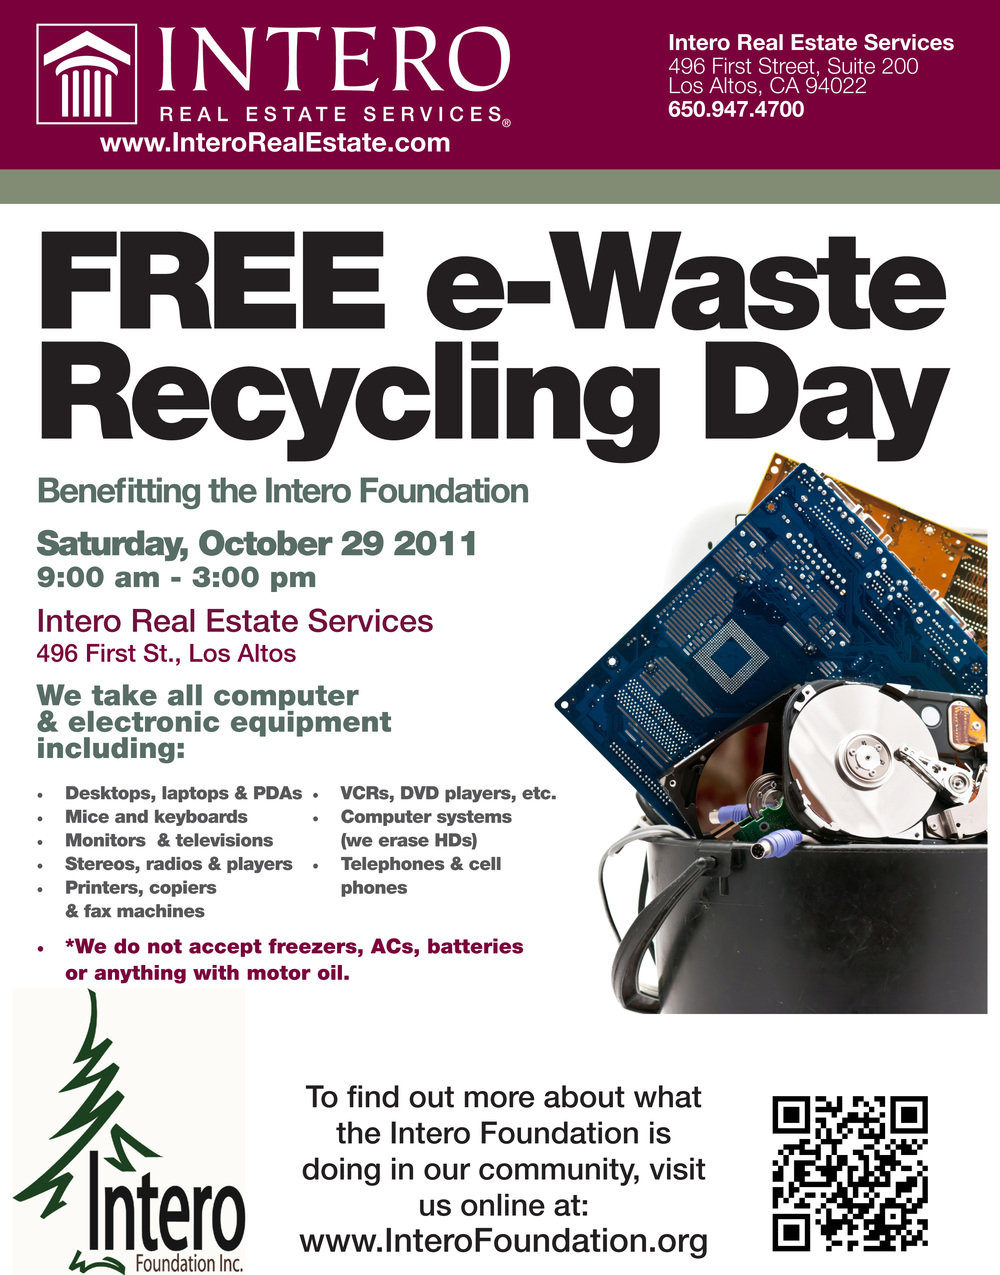 Free eWaste Recycling Day in Los Altos